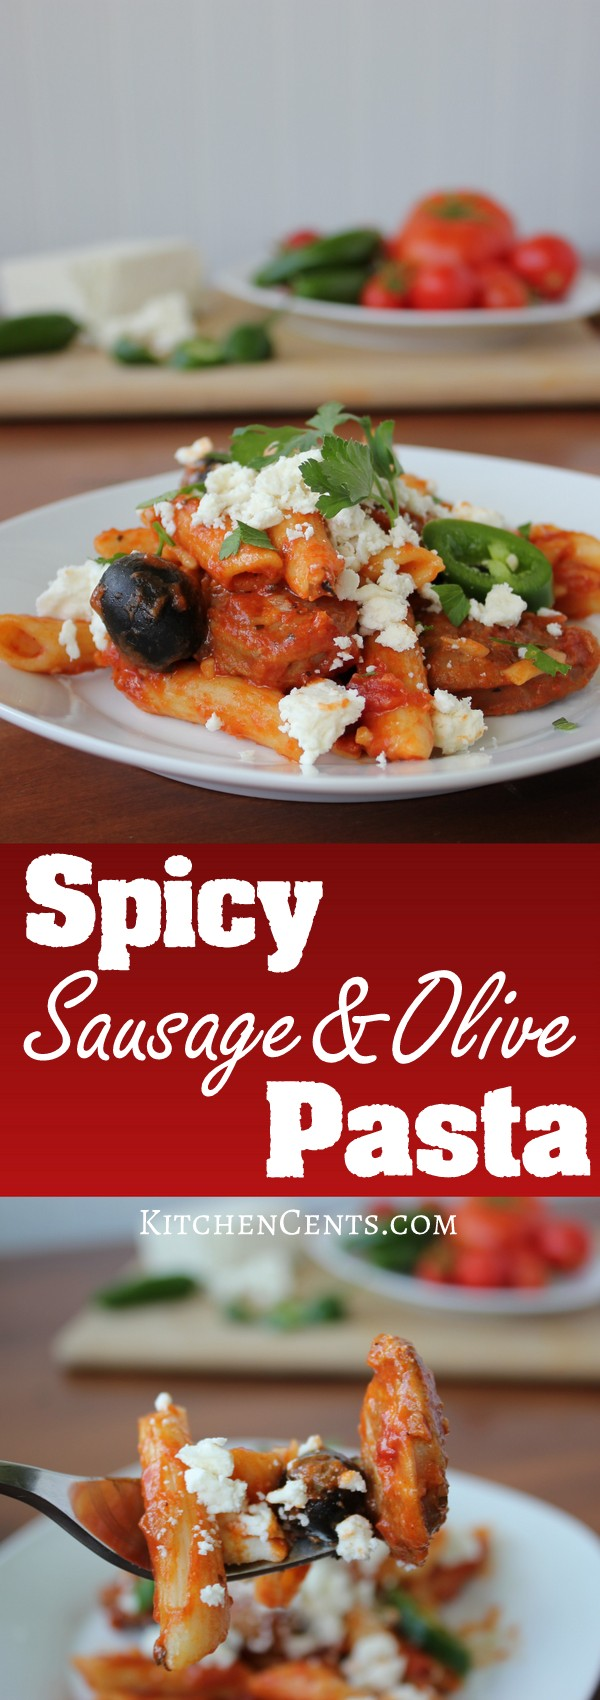 Spicy Sausage and Olive Pasta | KitchenCents.com